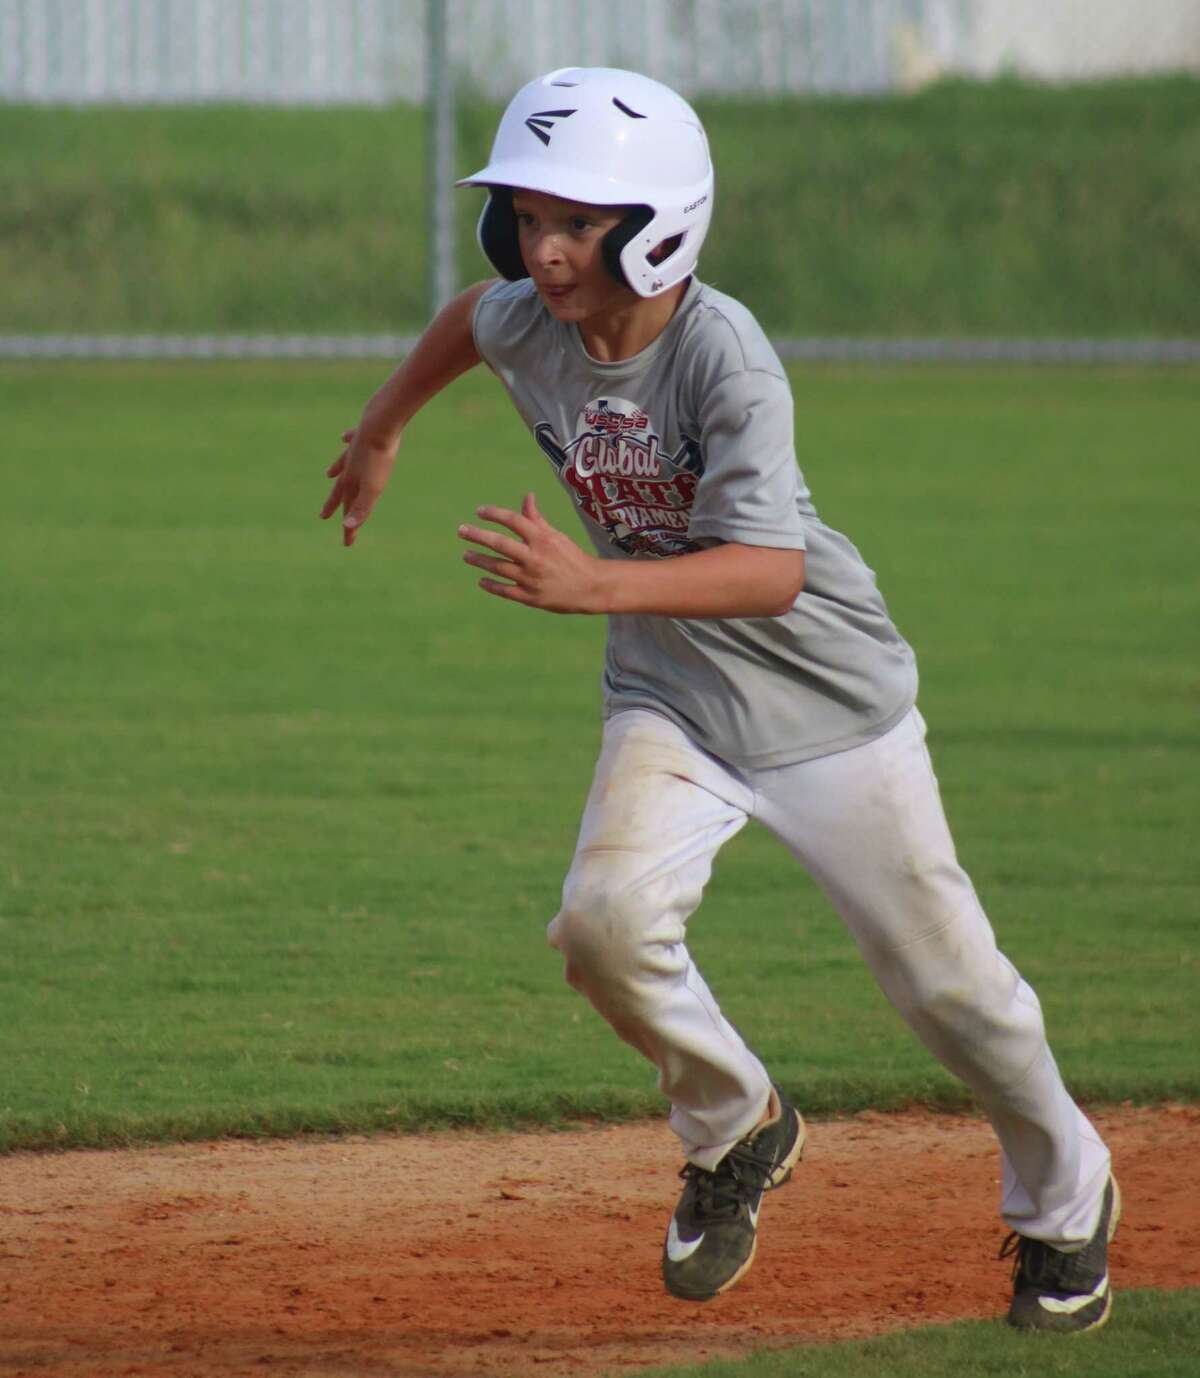 Deer Park's Cash Monson runs the bases during one of the team's final practices before the team starts the South Zone Tournament in Louisiana that begins Wednesday.